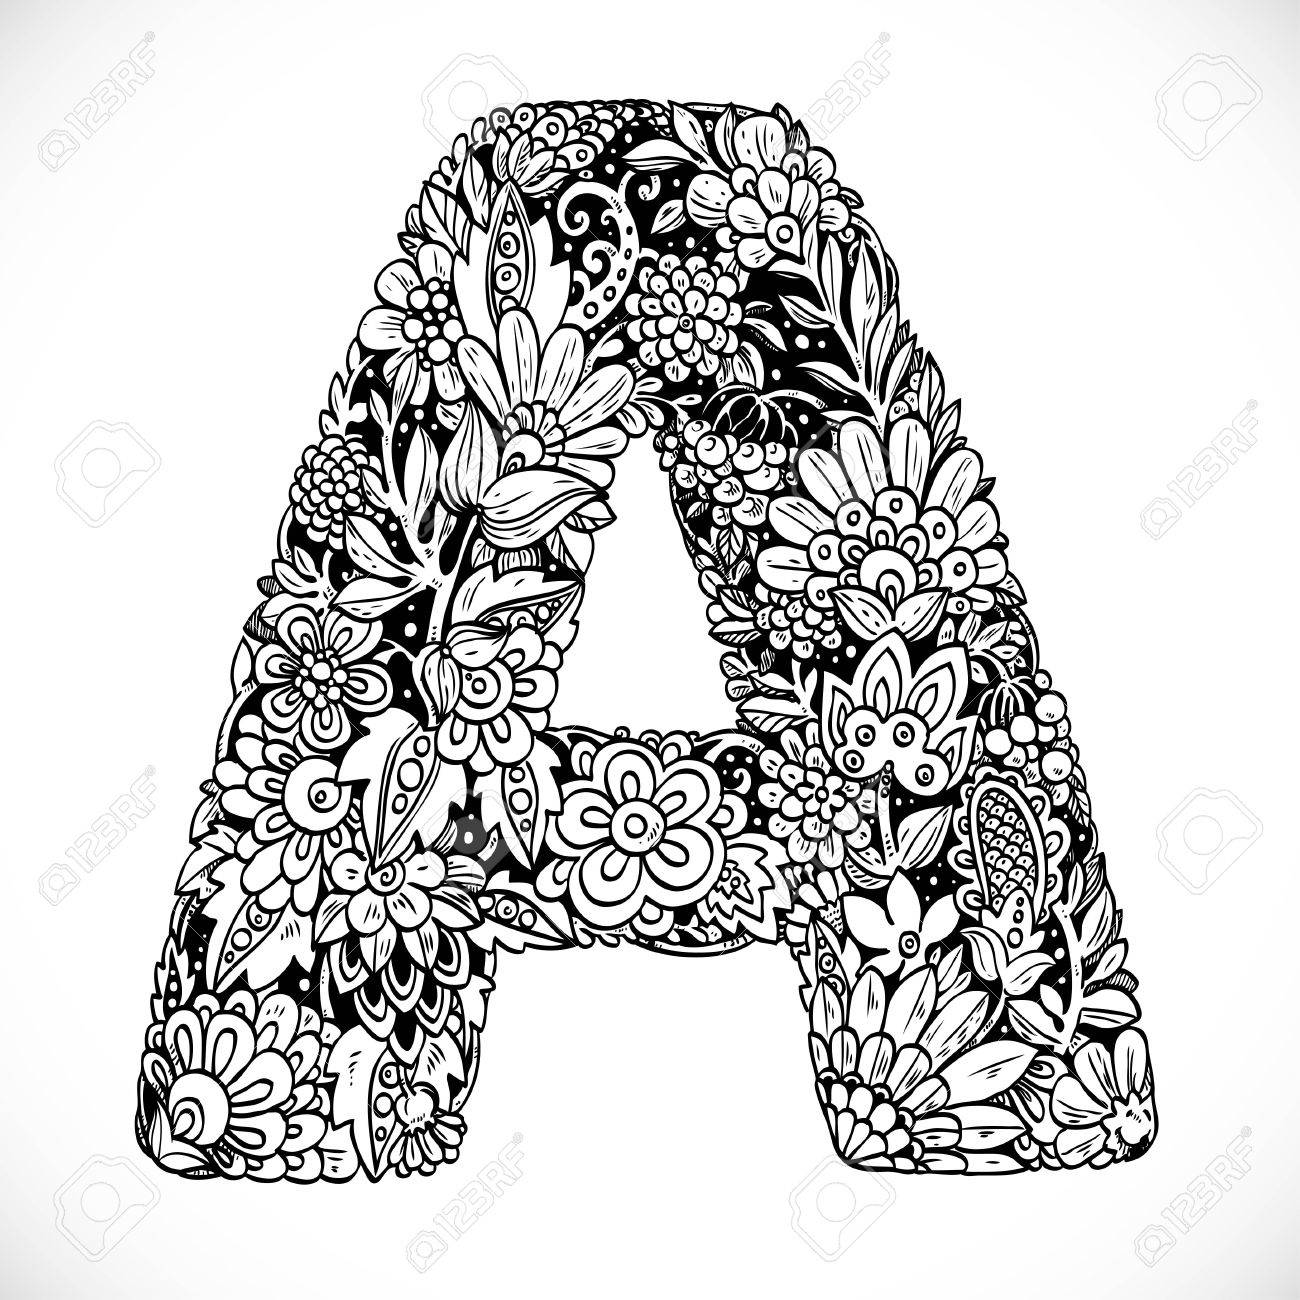 Doodles font from ornamental flowers letter a black and white doodles font from ornamental flowers letter a black and white stock vector 52156691 thecheapjerseys Choice Image